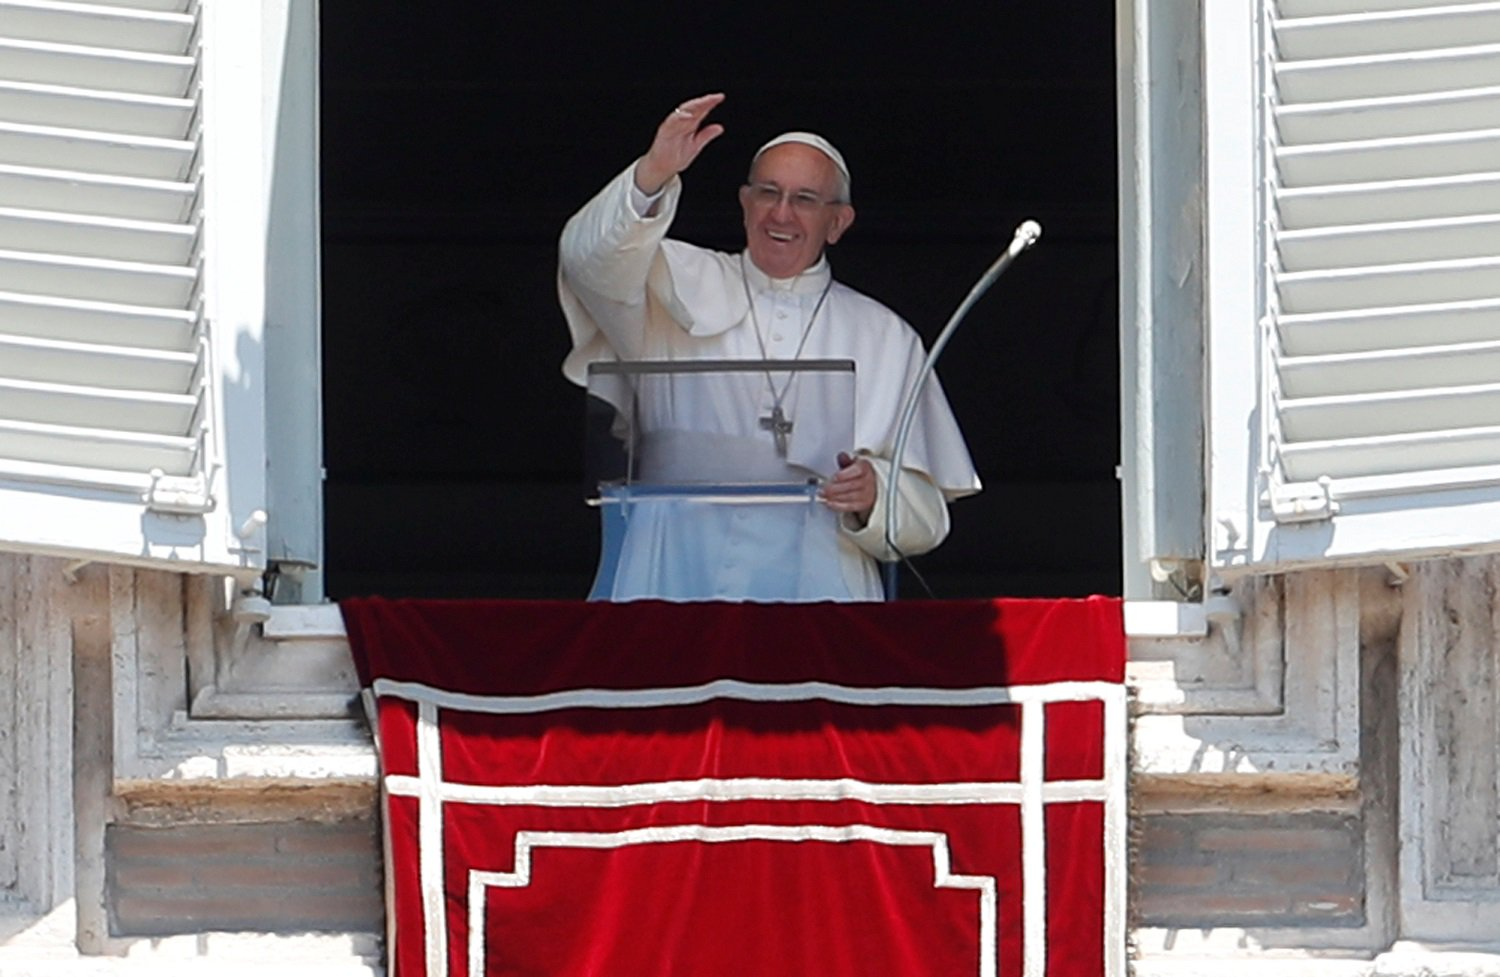 Pope Francis waves during his Sunday Angelus prayer in Saint Peter